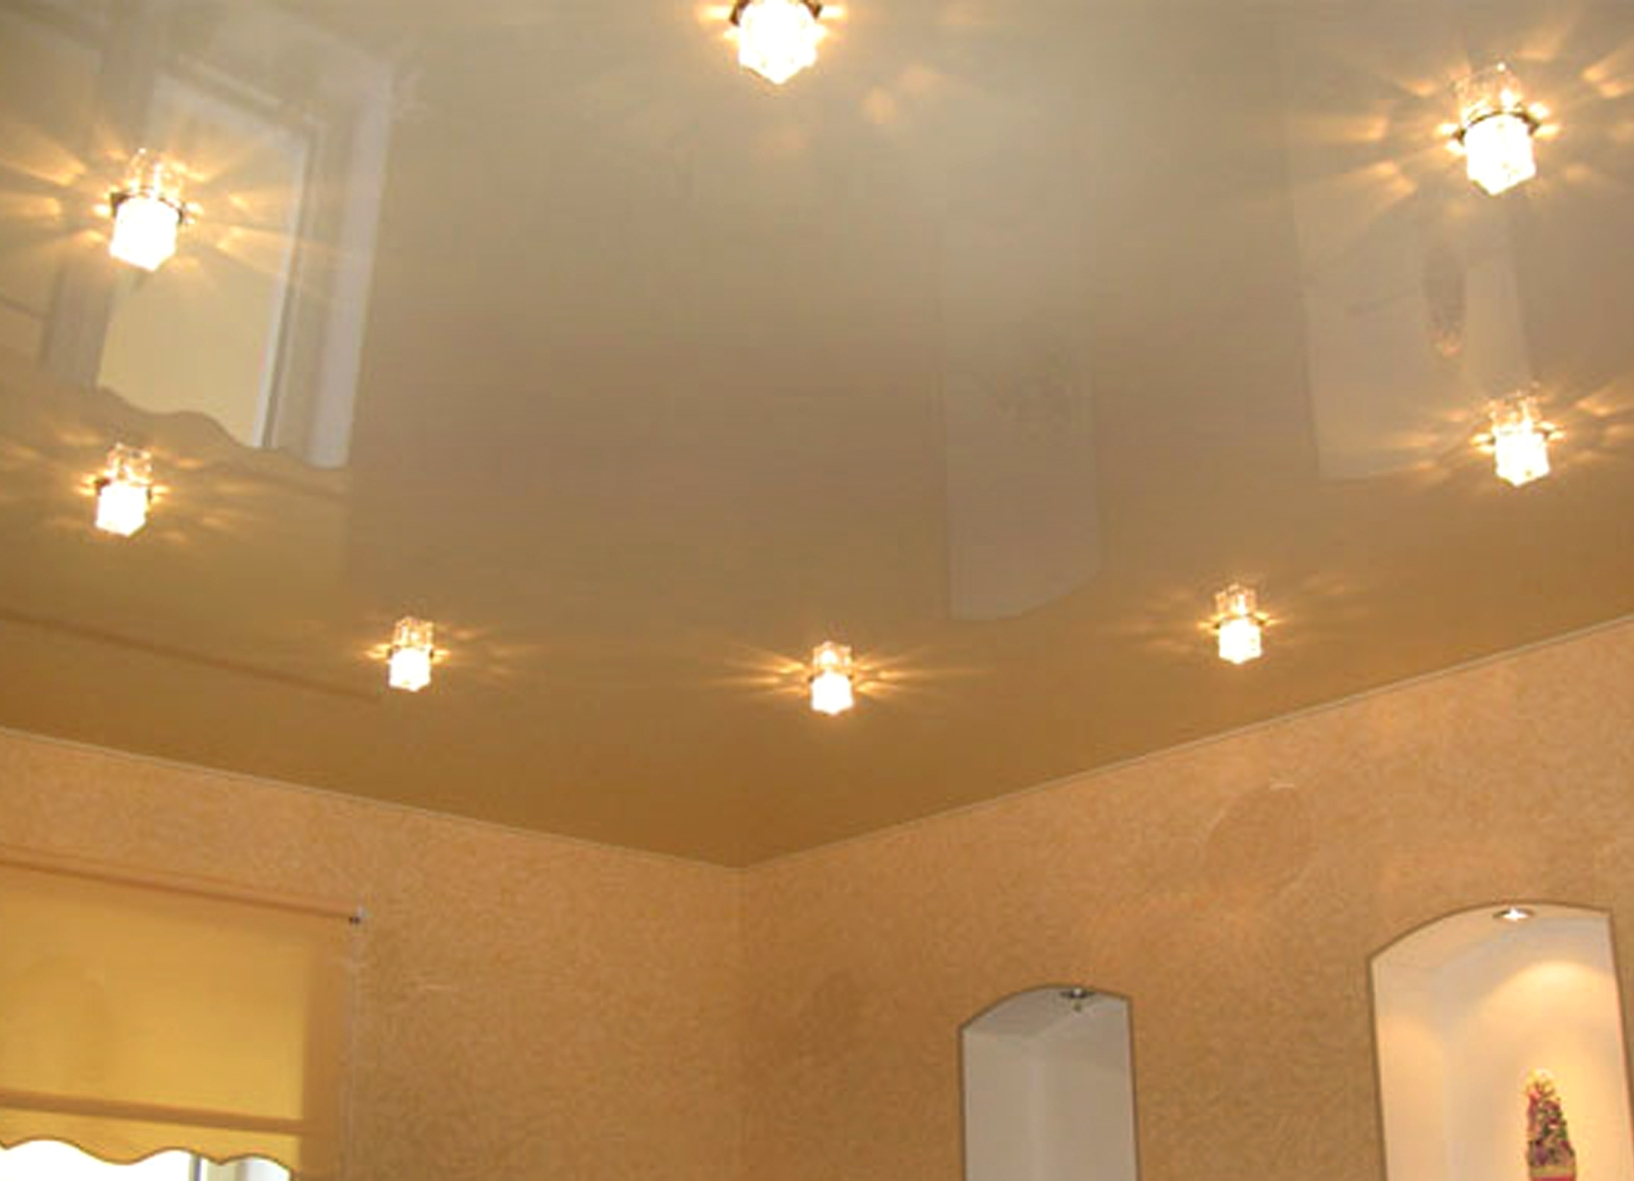 Cons and pros of the stretch ceiling in several levels for the living room